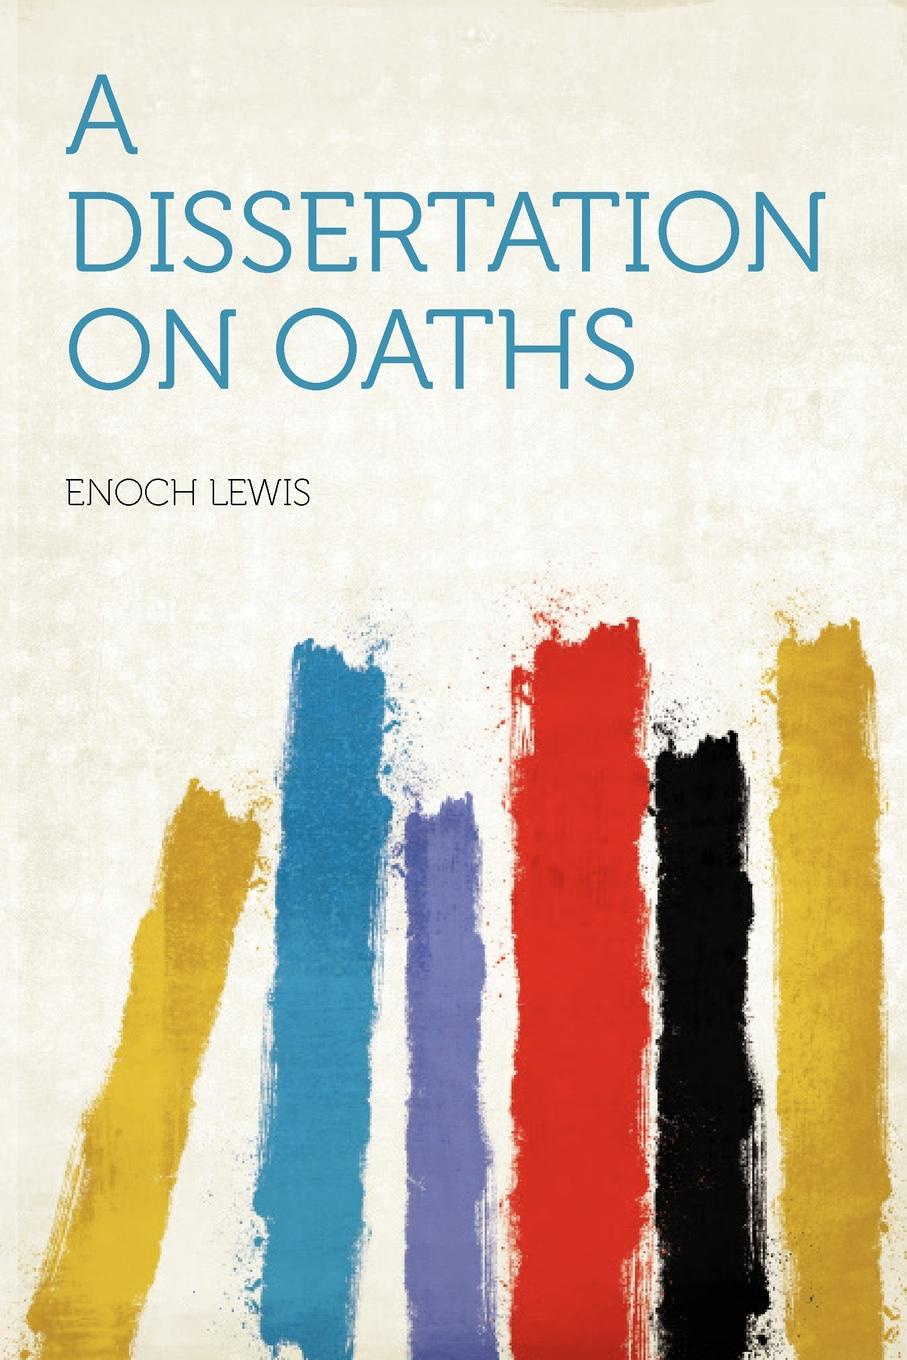 A Dissertation on Oaths